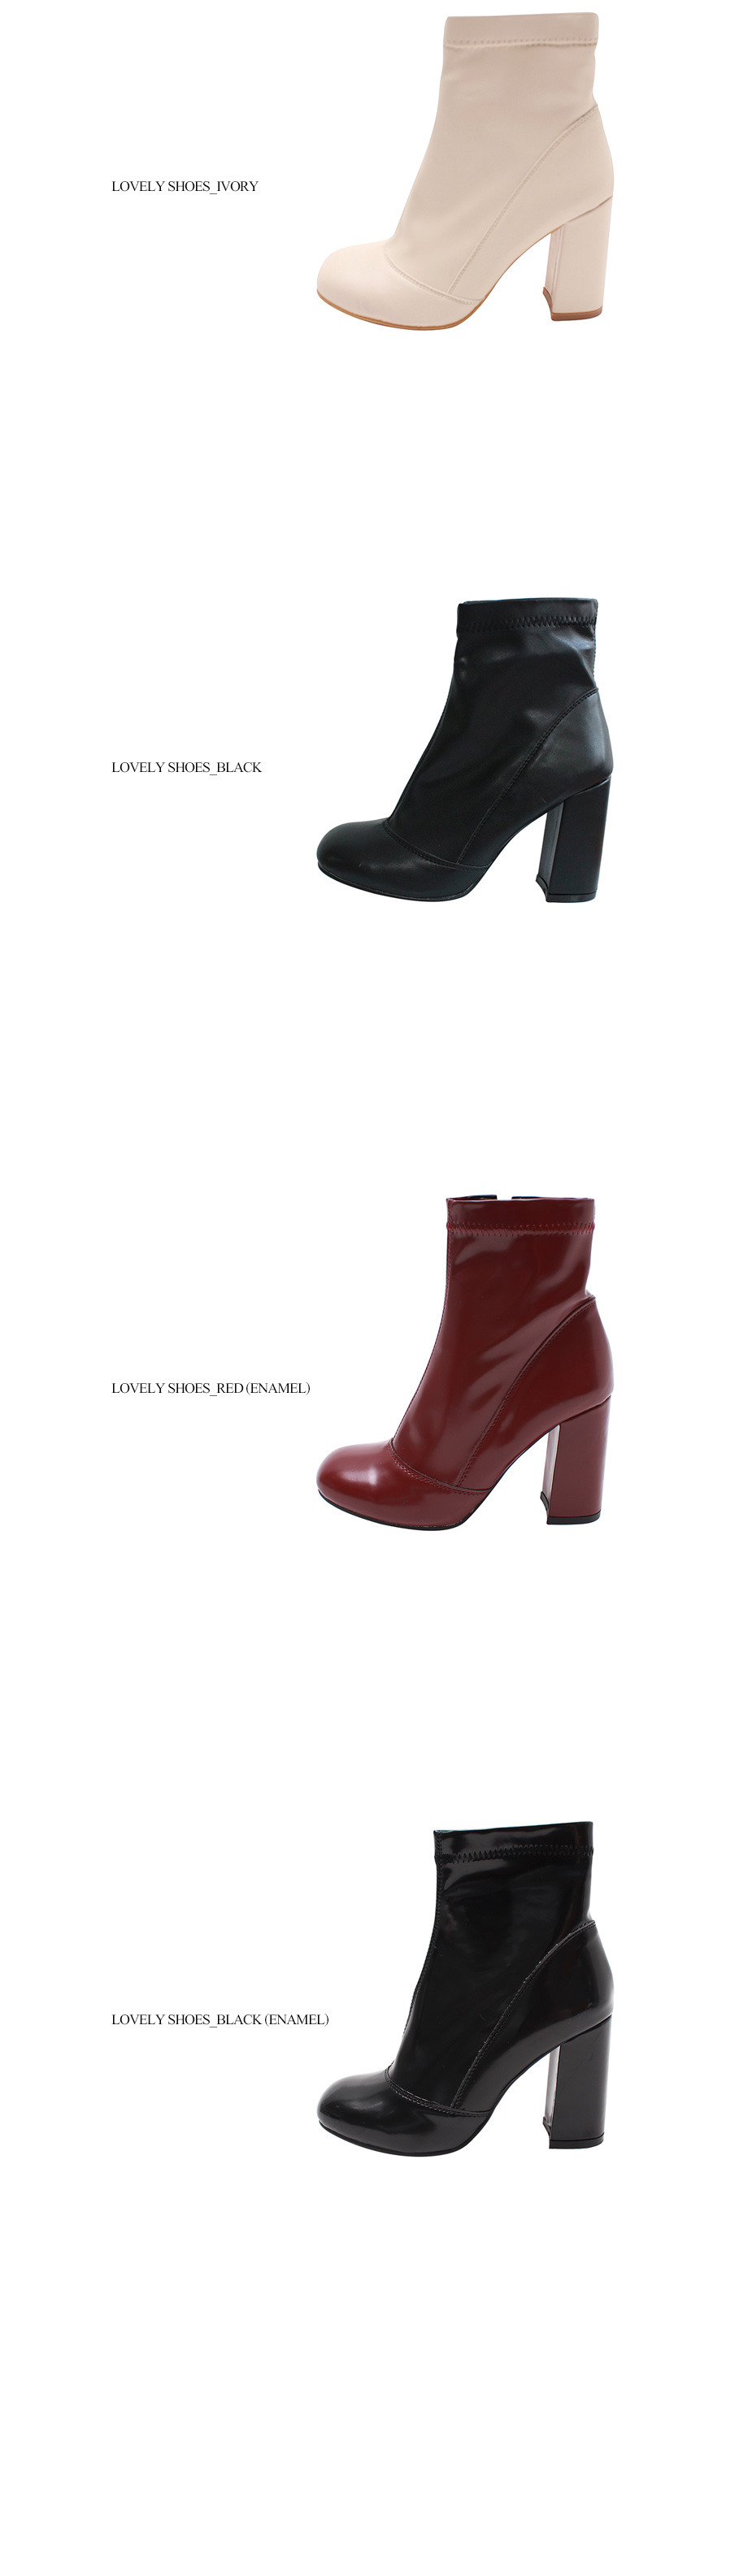 Karizu Ankle Boots 9cm